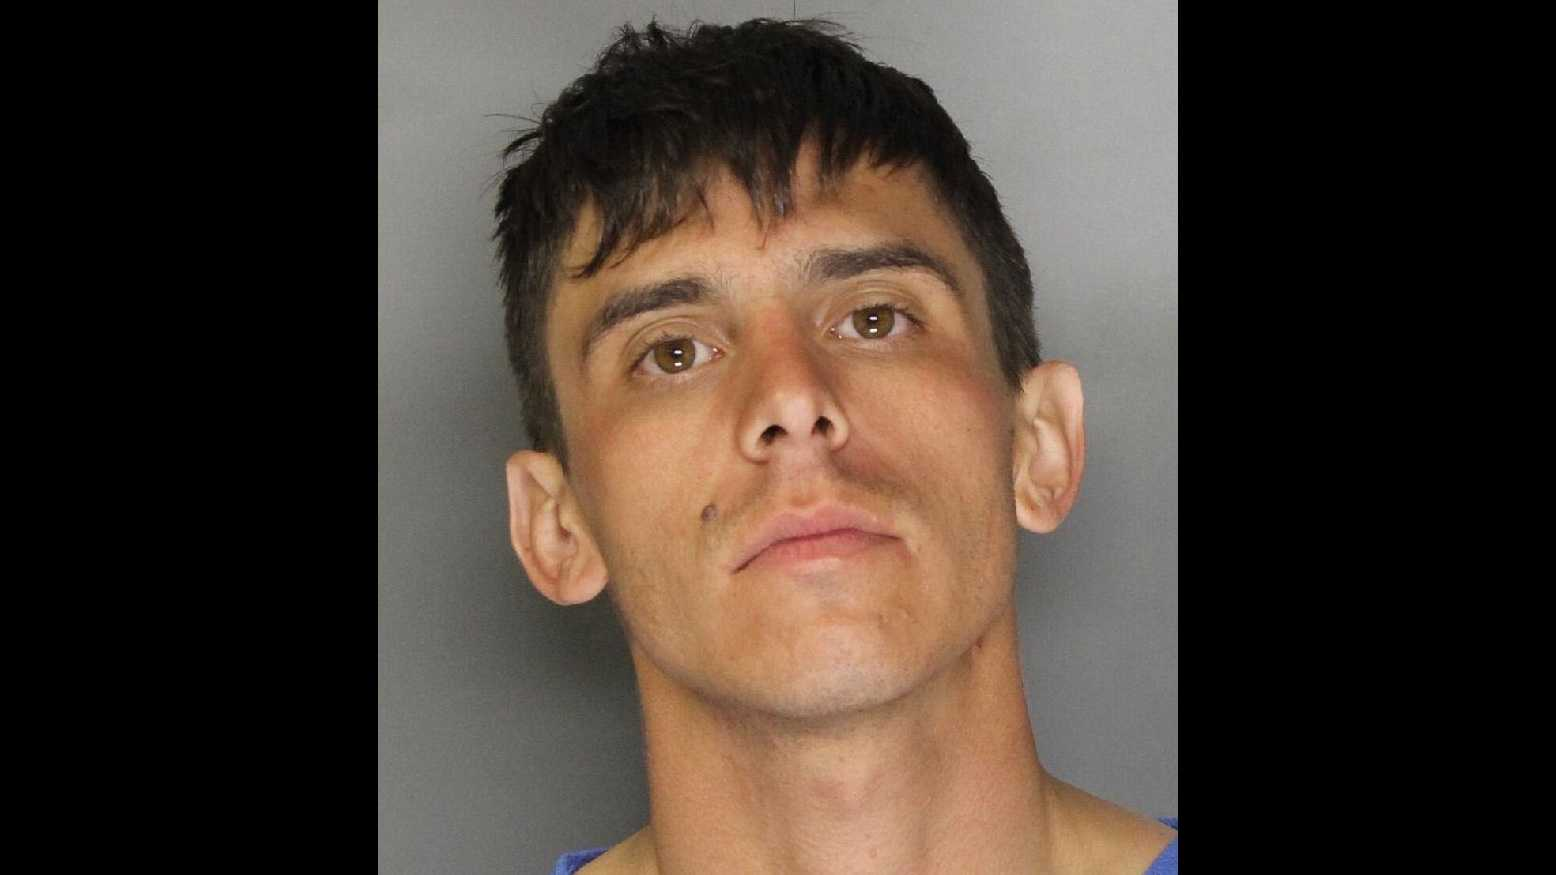 Austin Barry Scott, 28, was arrested April 7, 2016, in connection with a hit-and-run crash that injured a California Highway Patrol officer, the CHP said.